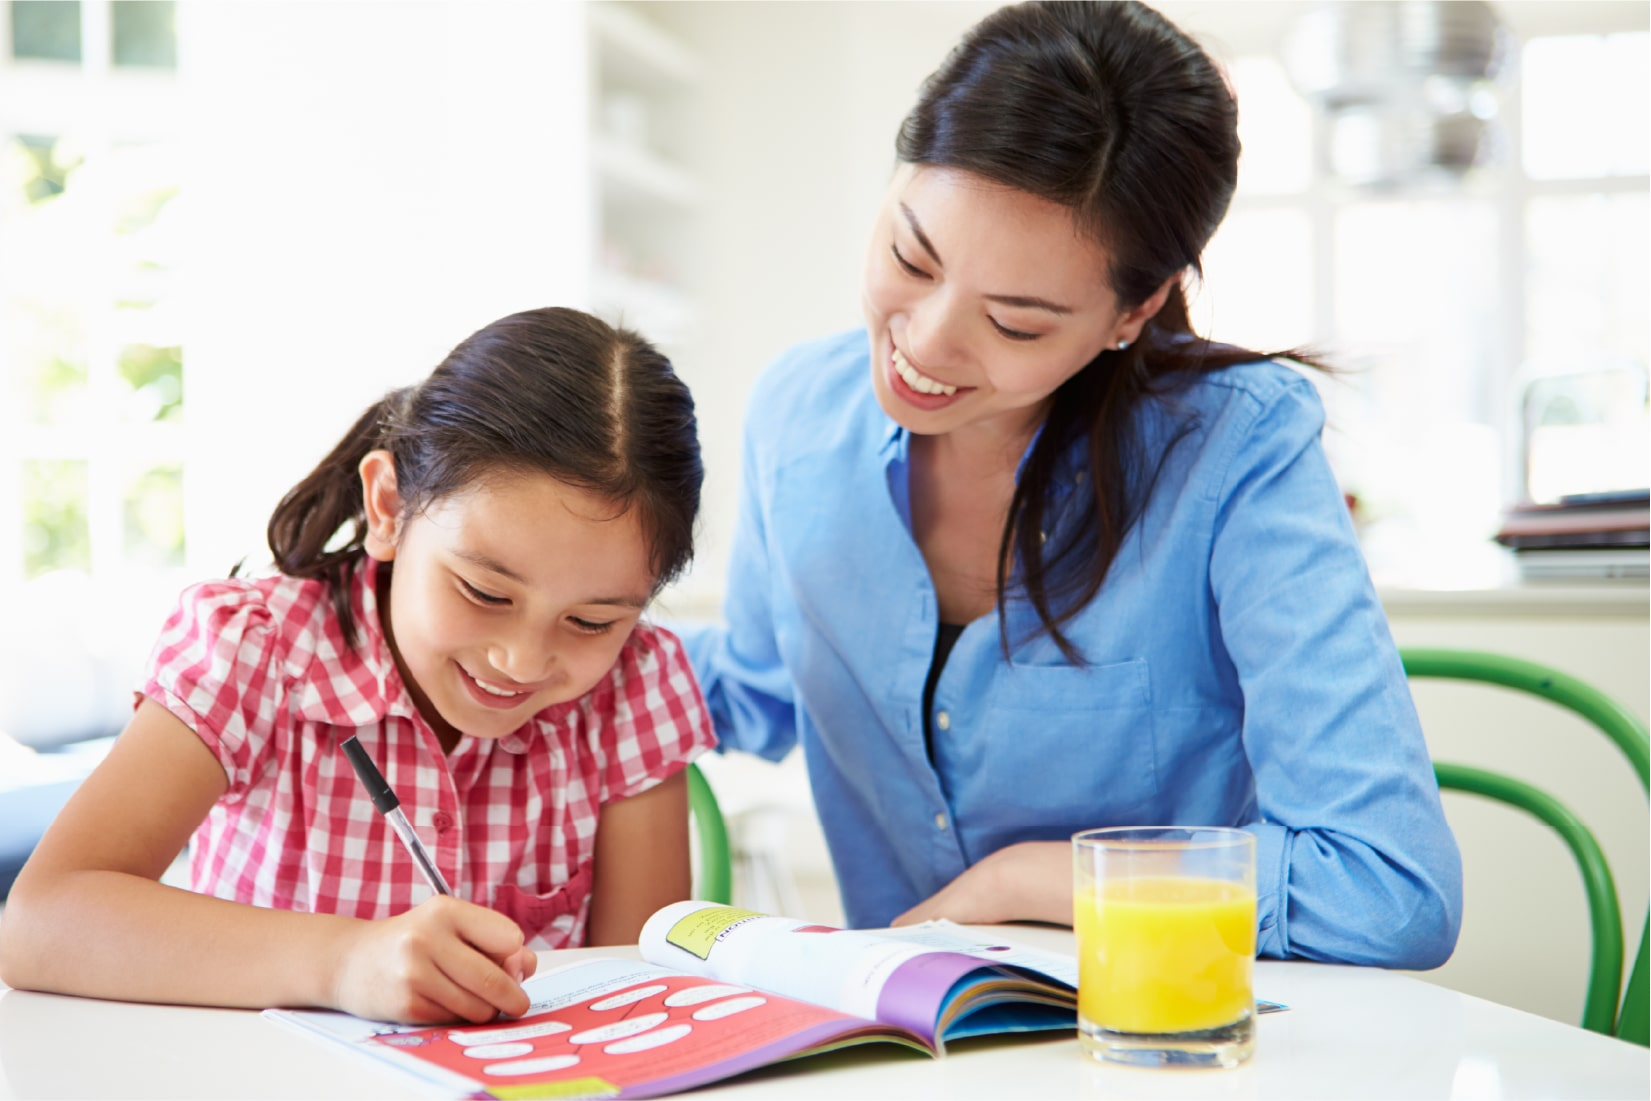 practice free test papers with your tutor